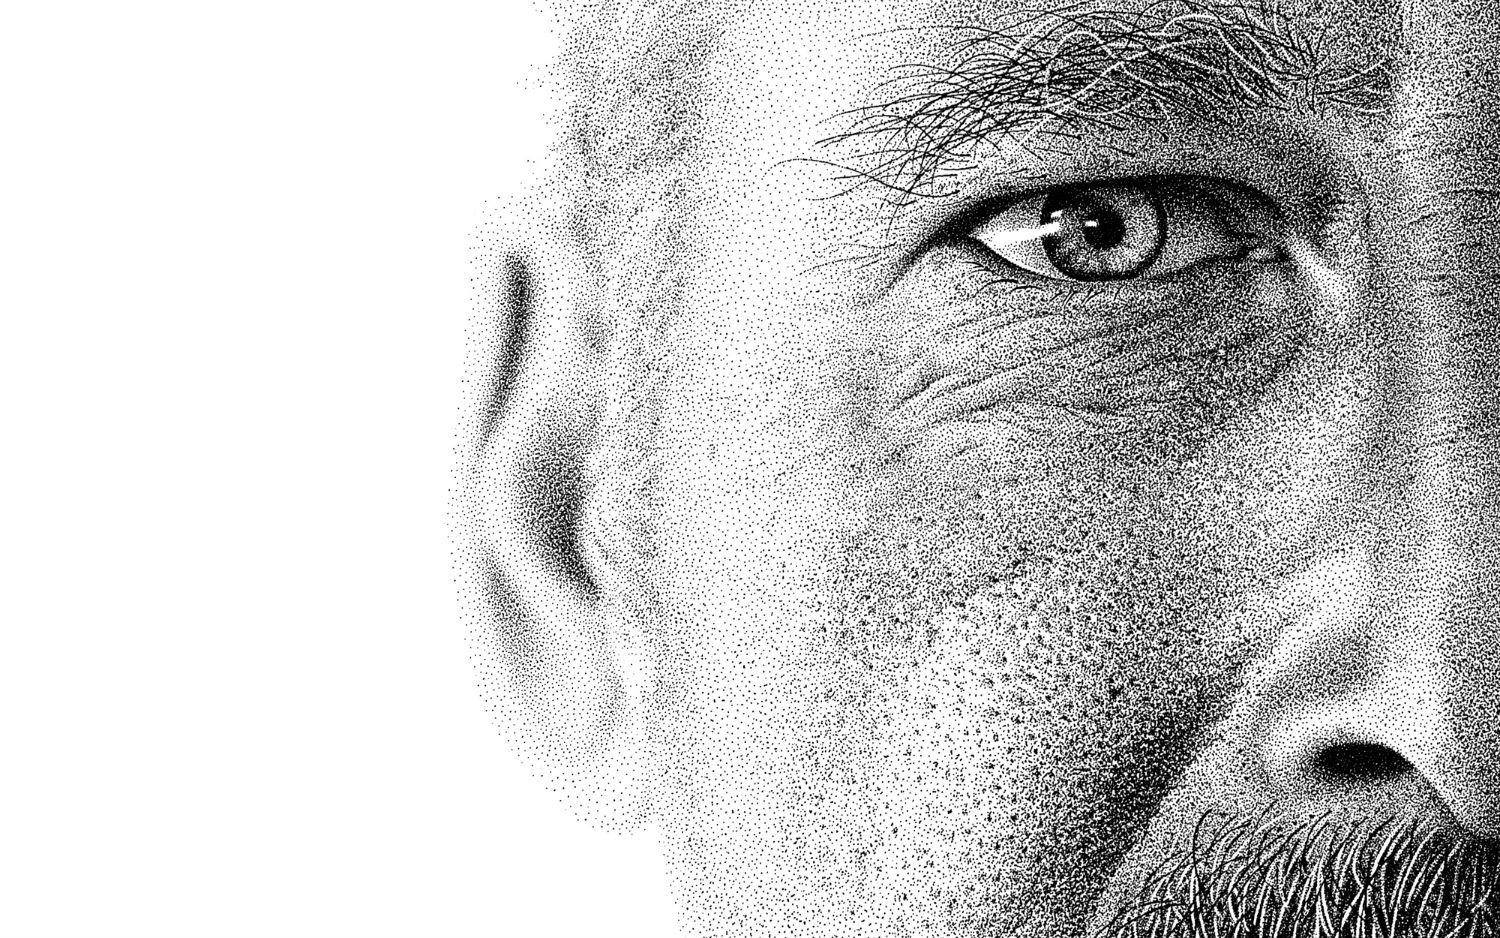 miguel endura close up black white stippling art